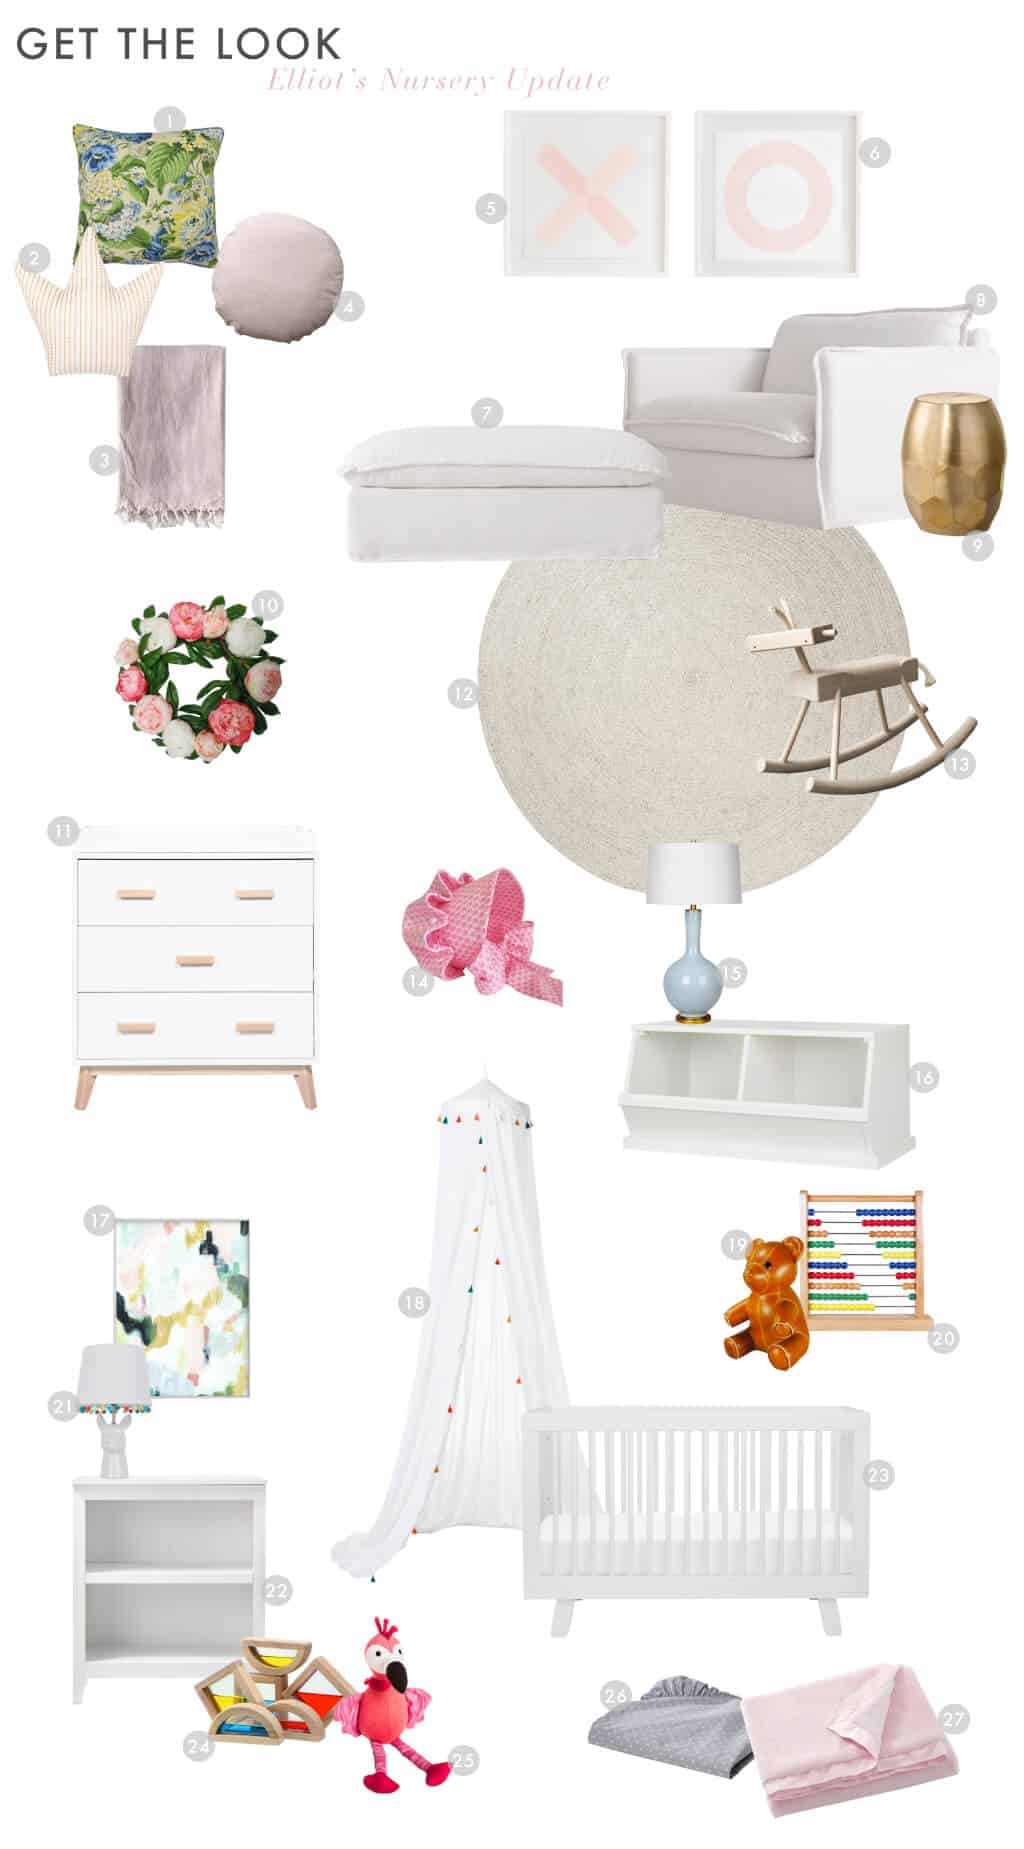 Emily-Henderson_English-Tudor_Modern_Elliots-Nursery_Update_Get-the-Look